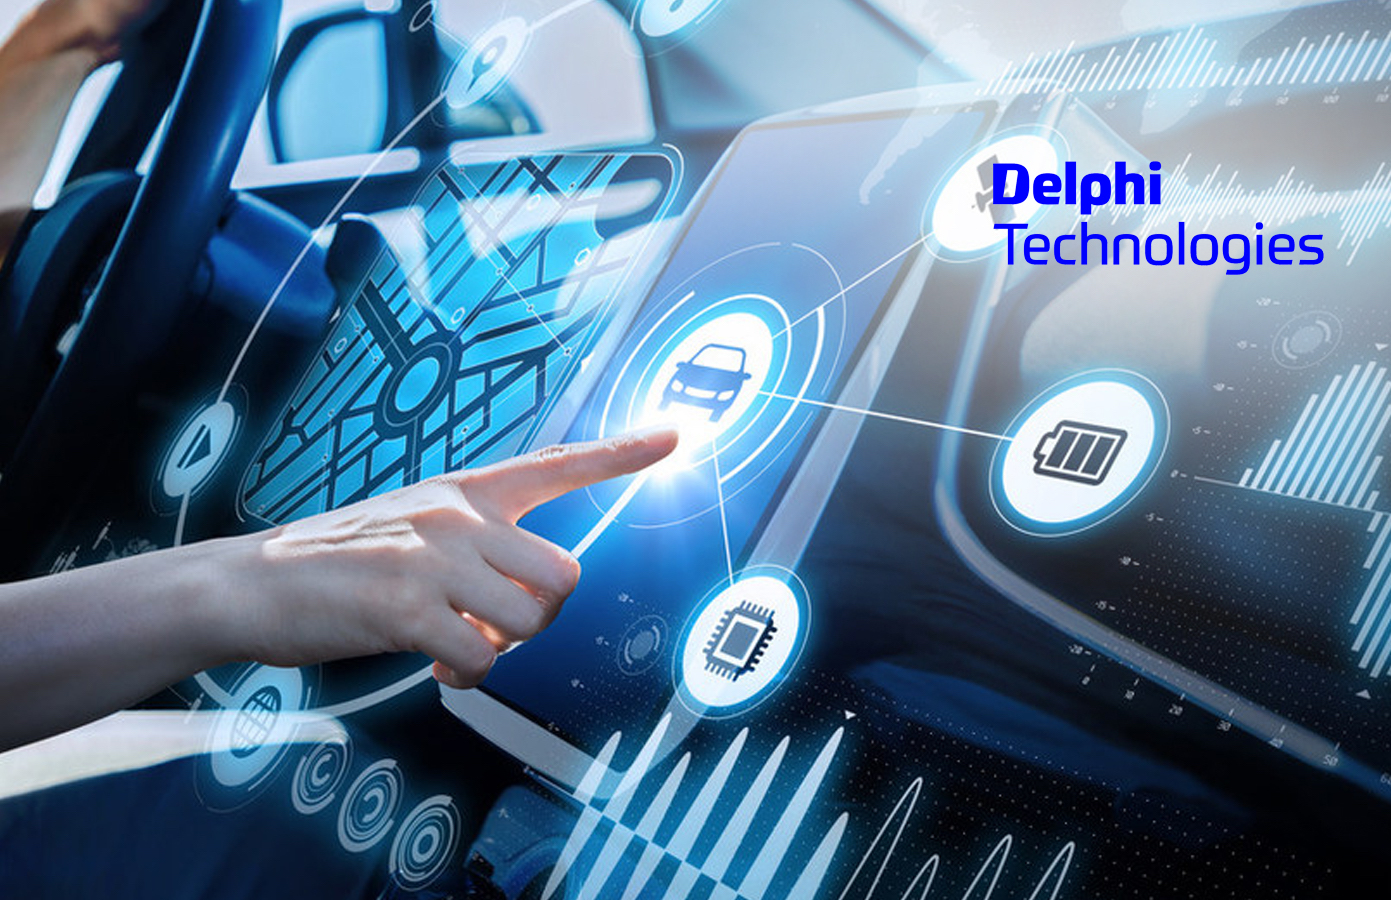 Learn about Delphi Technologies multi-charge ignition coils